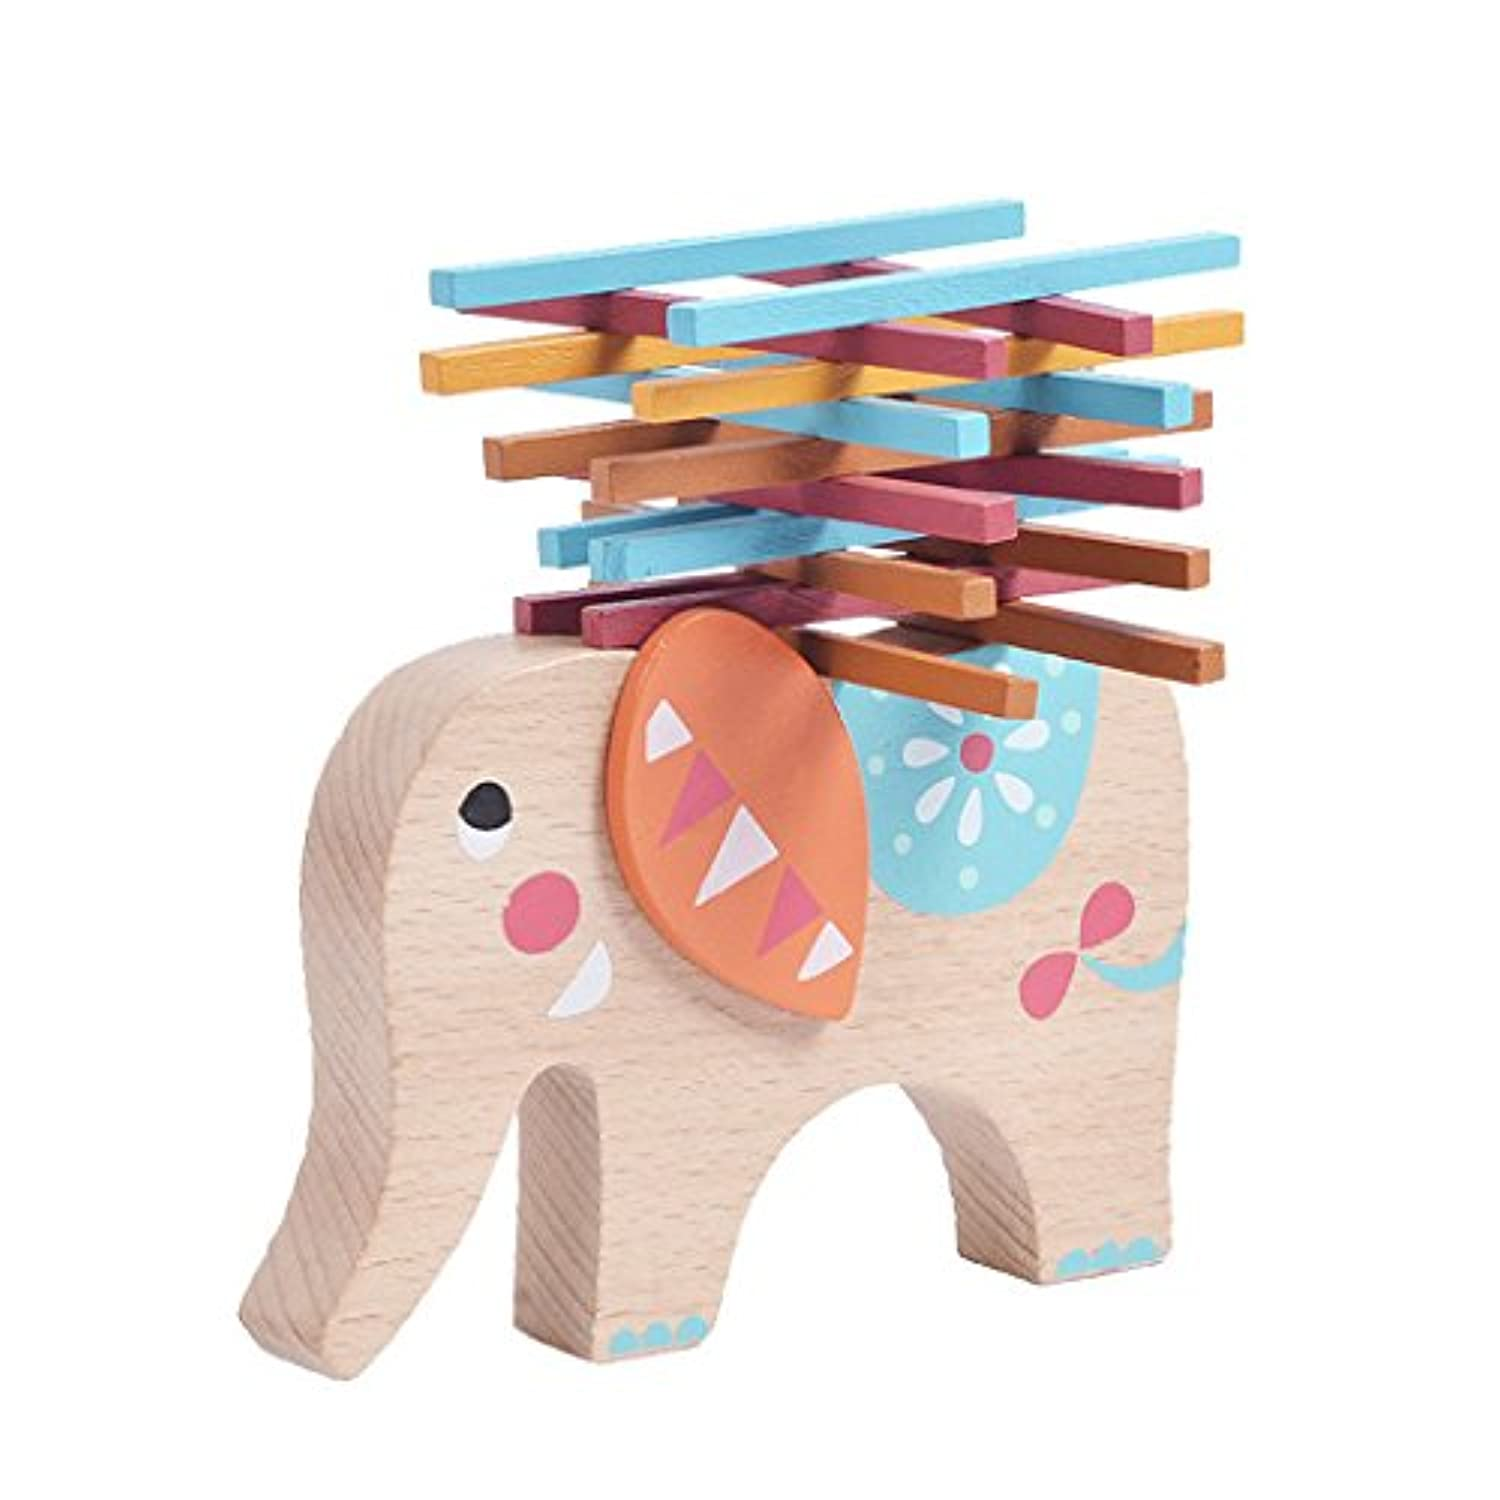 Wooden Toy Elephant Balancing Game Blocks Wooden Toys Stacking Blocks Kids Educational Toys